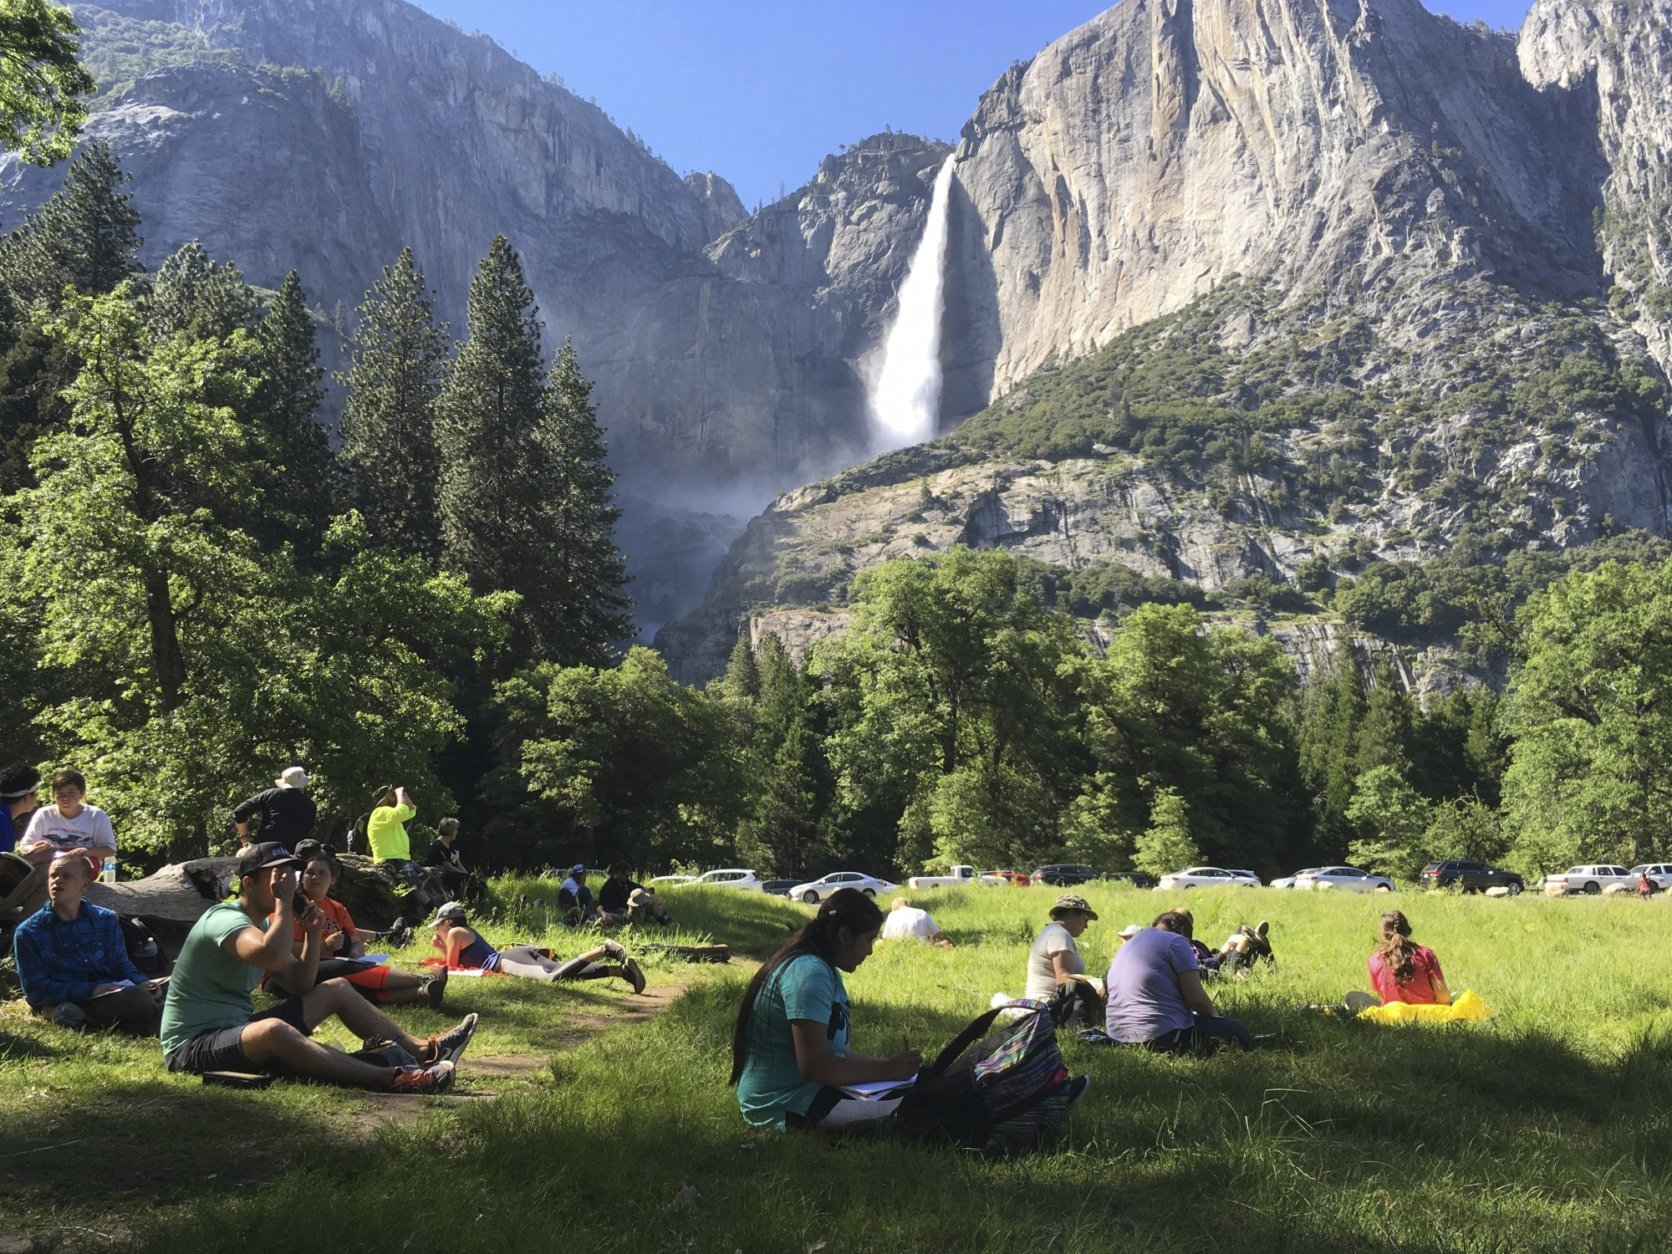 FILE - In this May 25, 2017 file photo, a class of eighth-grade students and their chaperones sit in a meadow at Yosemite National Park, Calif., below Yosemite Falls. Some of the West's iconic national parks are beginning to partially close as they deal with overflowing restrooms and vandals on the 10th day of a federal government shutdown. (AP Photo/Scott Smith, File)